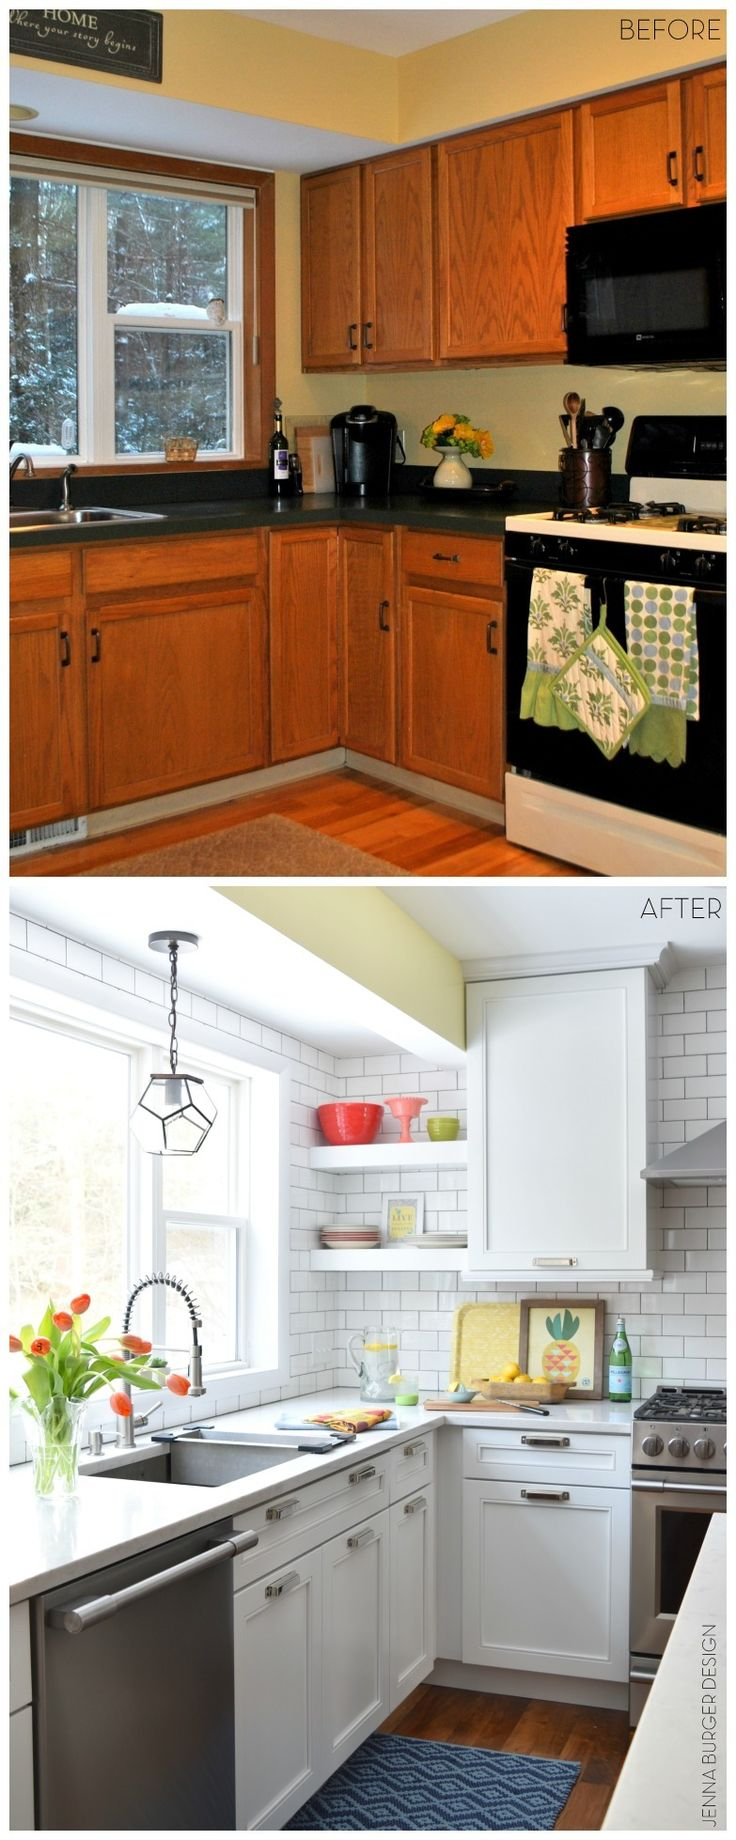 best 25 before after kitchen ideas on pinterest before after kitchen makeover reveal before and after kitchen renovation with white gray cabinets open